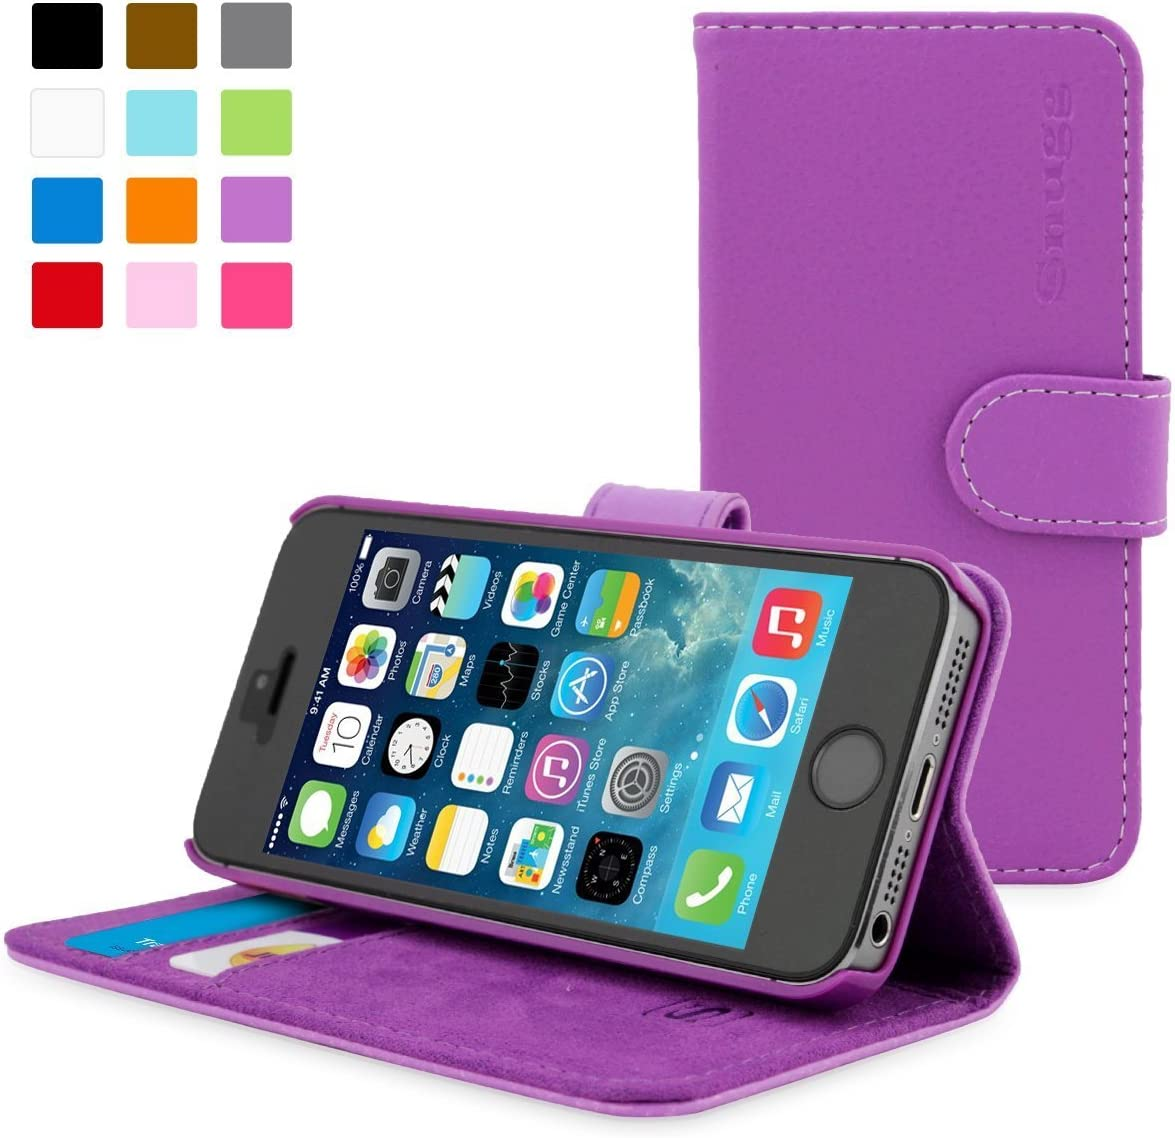 Snugg iPhone 5 / 5s Case, Purple Leather iPhone 5/5s Flip Case Premium Wallet Phone Cover with Card Slots for Apple iPhone 5 / 5s